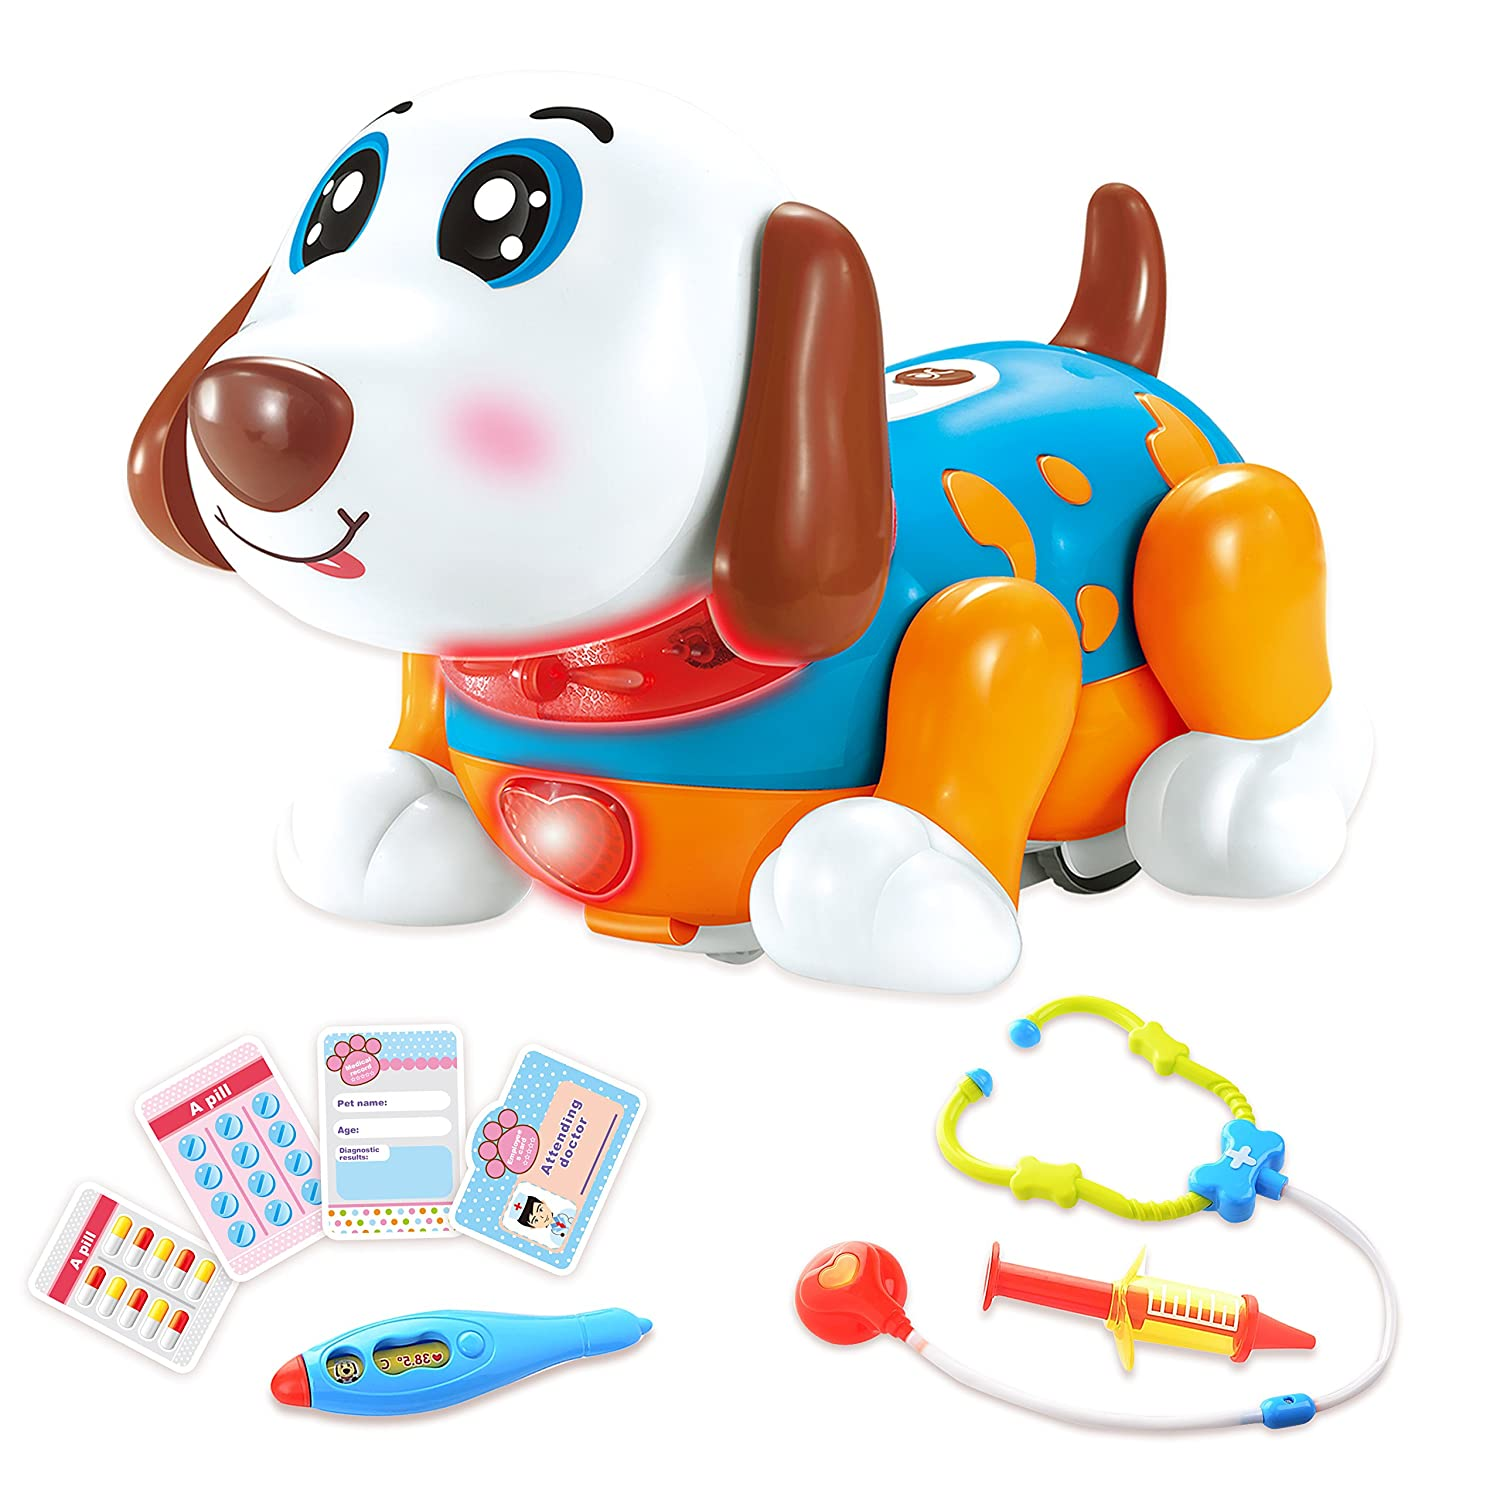 Pet Veterinarian Toys Doctor Kit for Kids for 2,3,4 Years Old Boys and Girls Birthday Gift Interactive Electronic Robot Dog Responds to Touch with Dance, Music & Barking (Red) GAMZOO